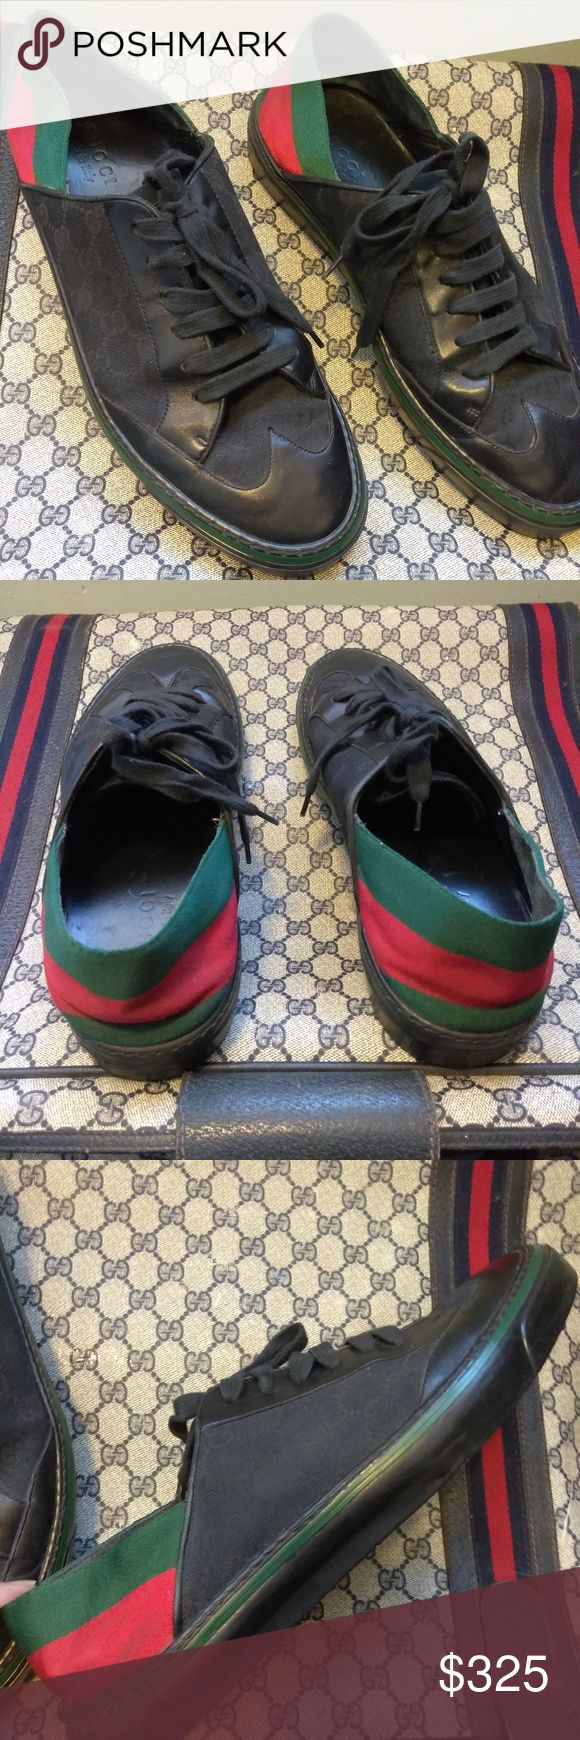 ⭐💥💯  gucci shoes⭐💥make offer 100% AUTHENTIC GUCCI SHOES GENTLY WORN AND IN A SMOKE FREE HOME .THEY ARE IN EXCELLENT CONDITION WITH A FEW MINOR  SCUFFS AND POSSIBLY CLEANED AT THE BOTTOM OF THE SHOE IF NEEDED  AS SHOWN IN PICTURES OTHER THAN THAT THEY ARE IN VERY GOOD CONDITION AND READY TO BE FASHIONABLE WORN. DATE NUMBER IS (1705690) AND THE SHOE SIZE IS A 10 1/2  . PRICE IS FIRM BUT WILL ENTERTAIN OFFERS . COMES WITH  NO BOX OR TAGS Gucci Shoes Sneakers